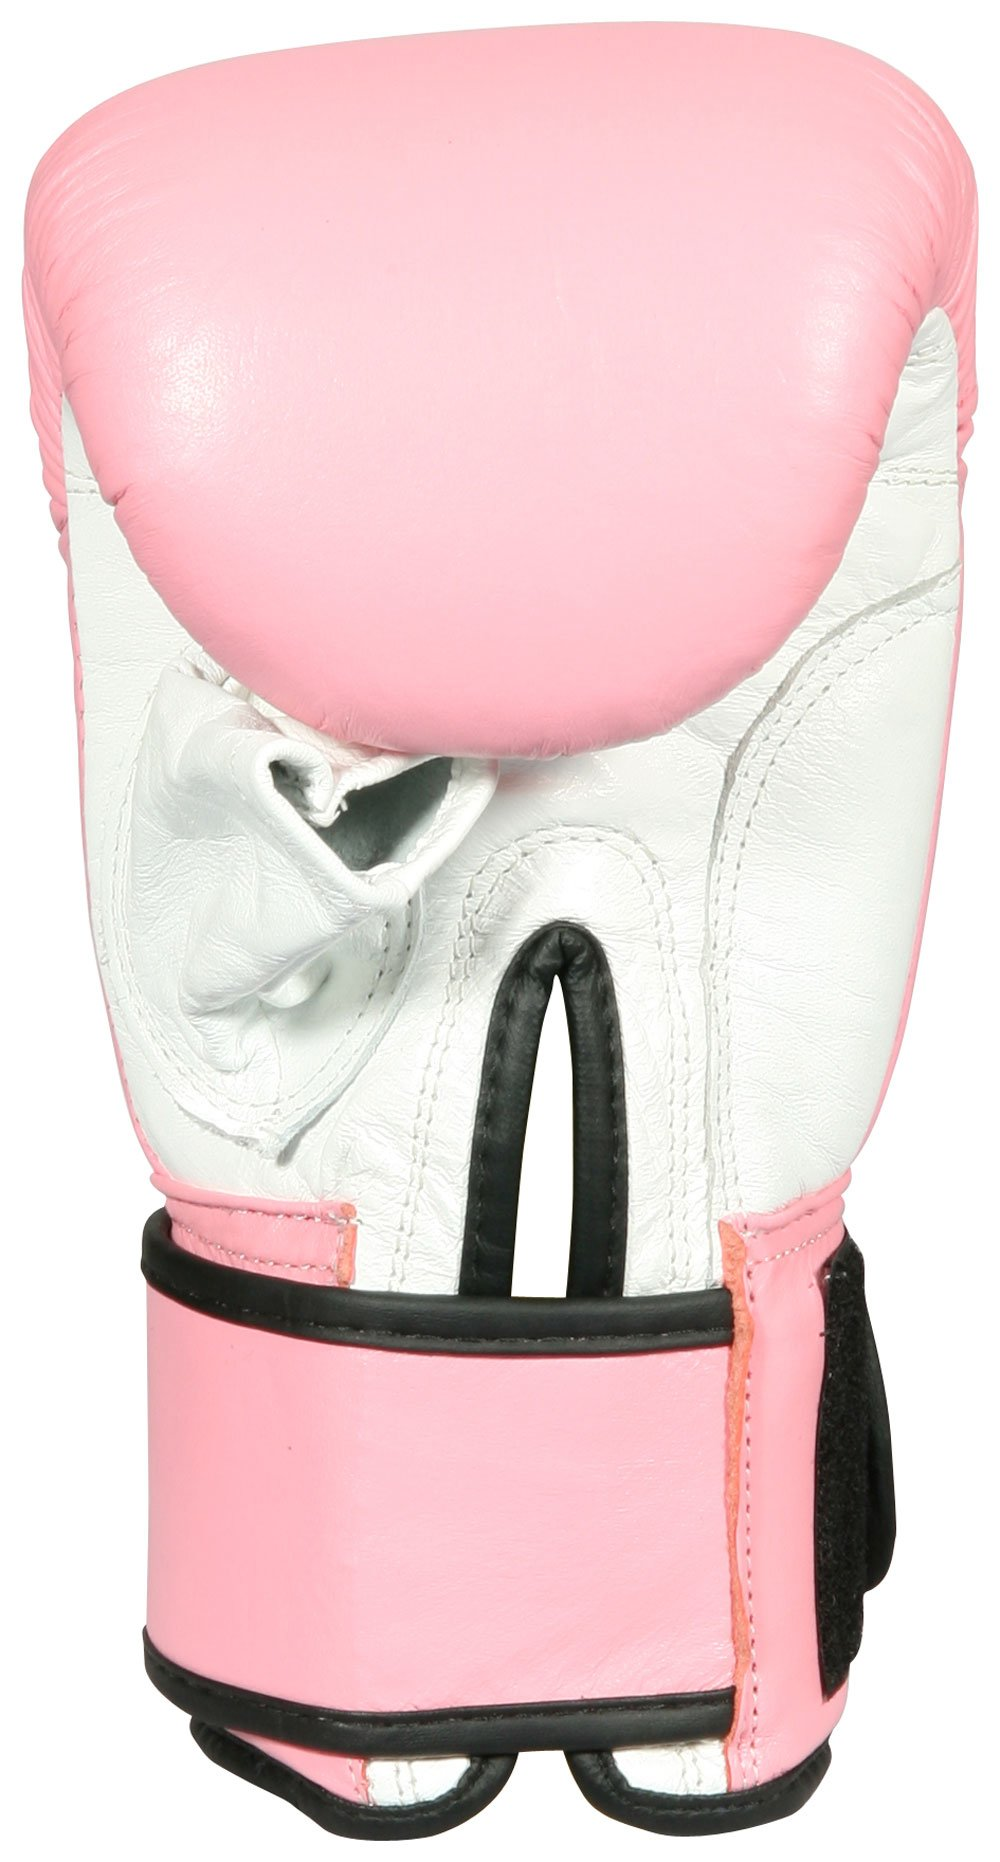 Ronin Pro Punch Boxing Glove - Pink